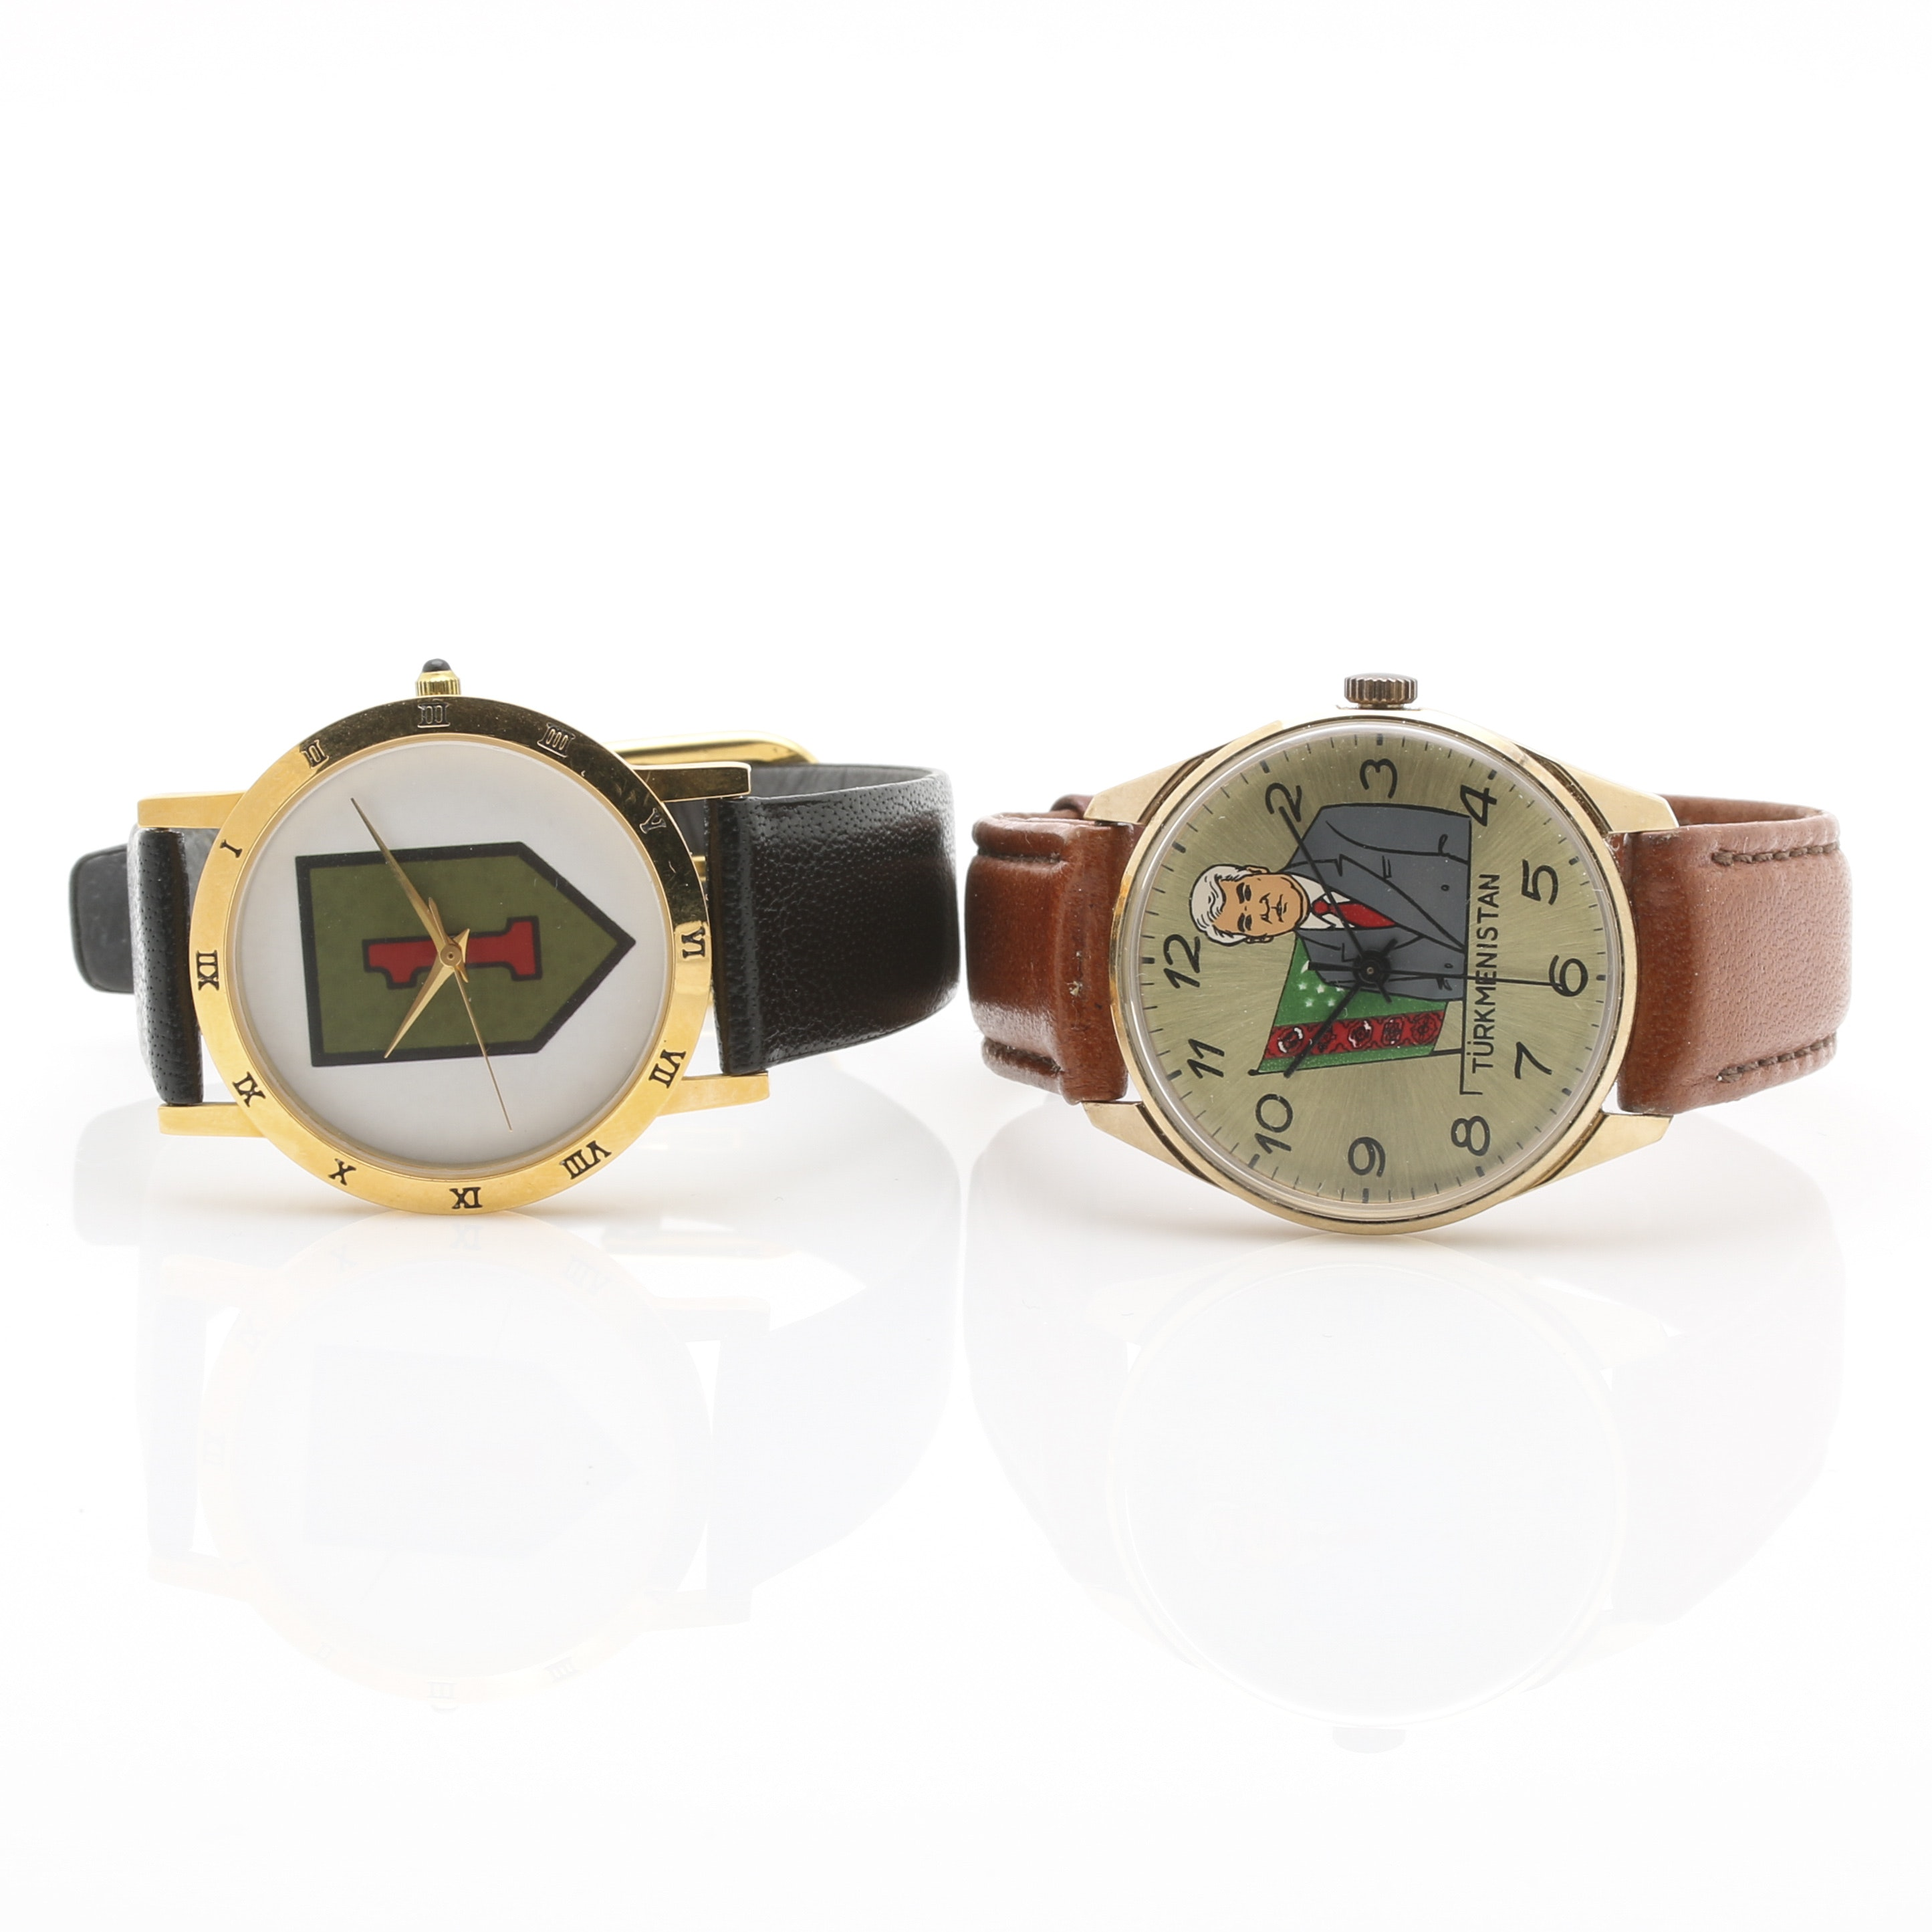 Watches Picturing the US First Infantry Division and Turkmenistan President Saparmurat Niyazov